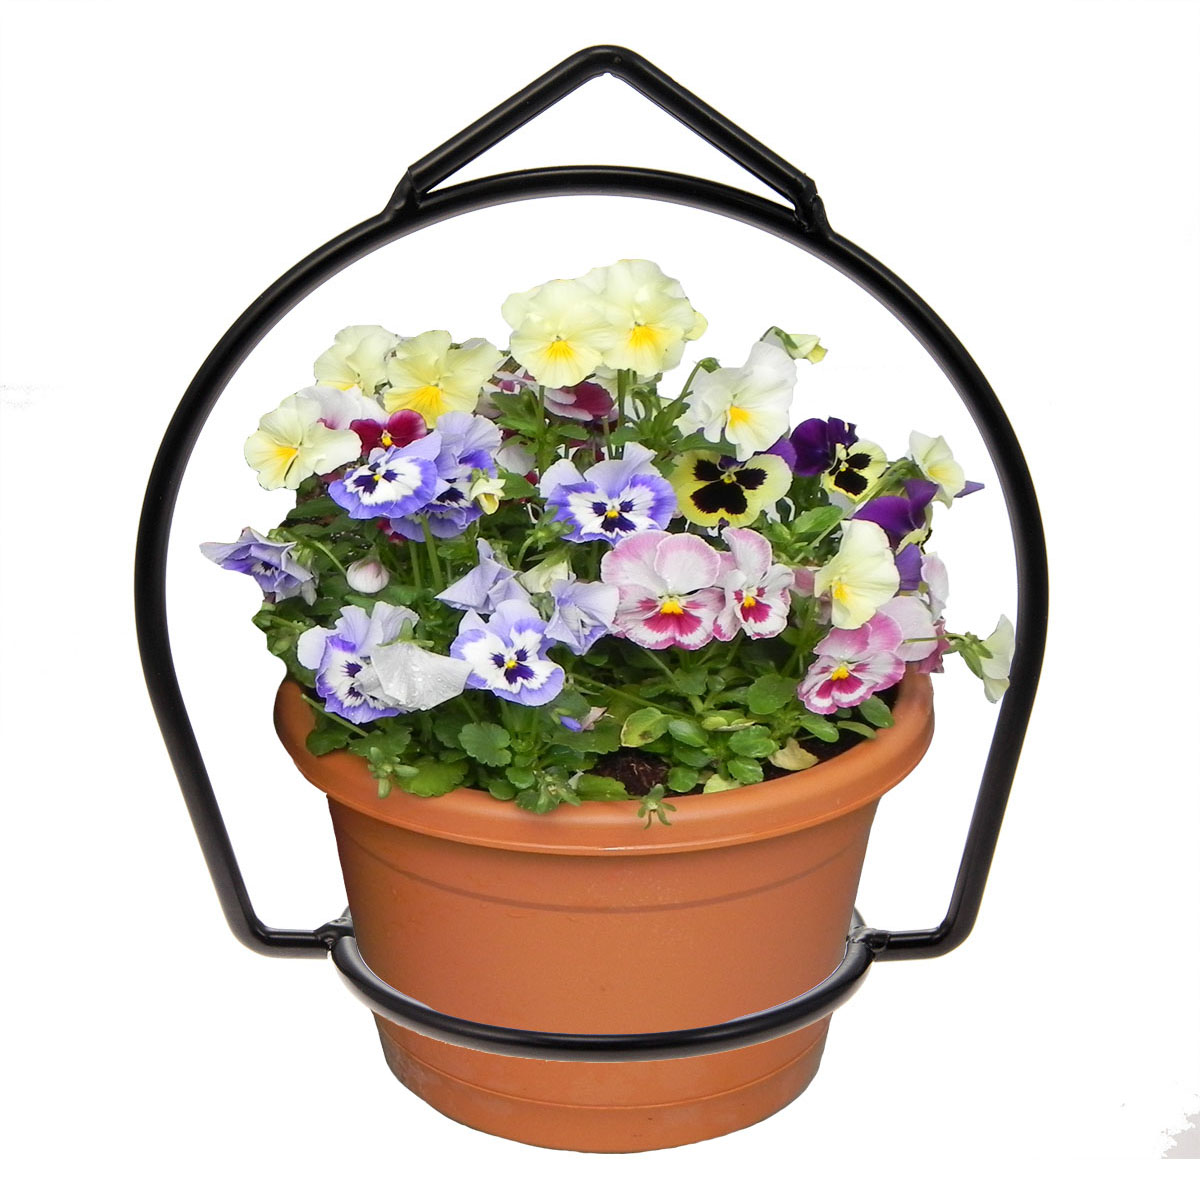 Brinkman Wrought Iron Flower Flower Pot Plant Hanger Ring Votive Holder Outdoor Hanging Basket